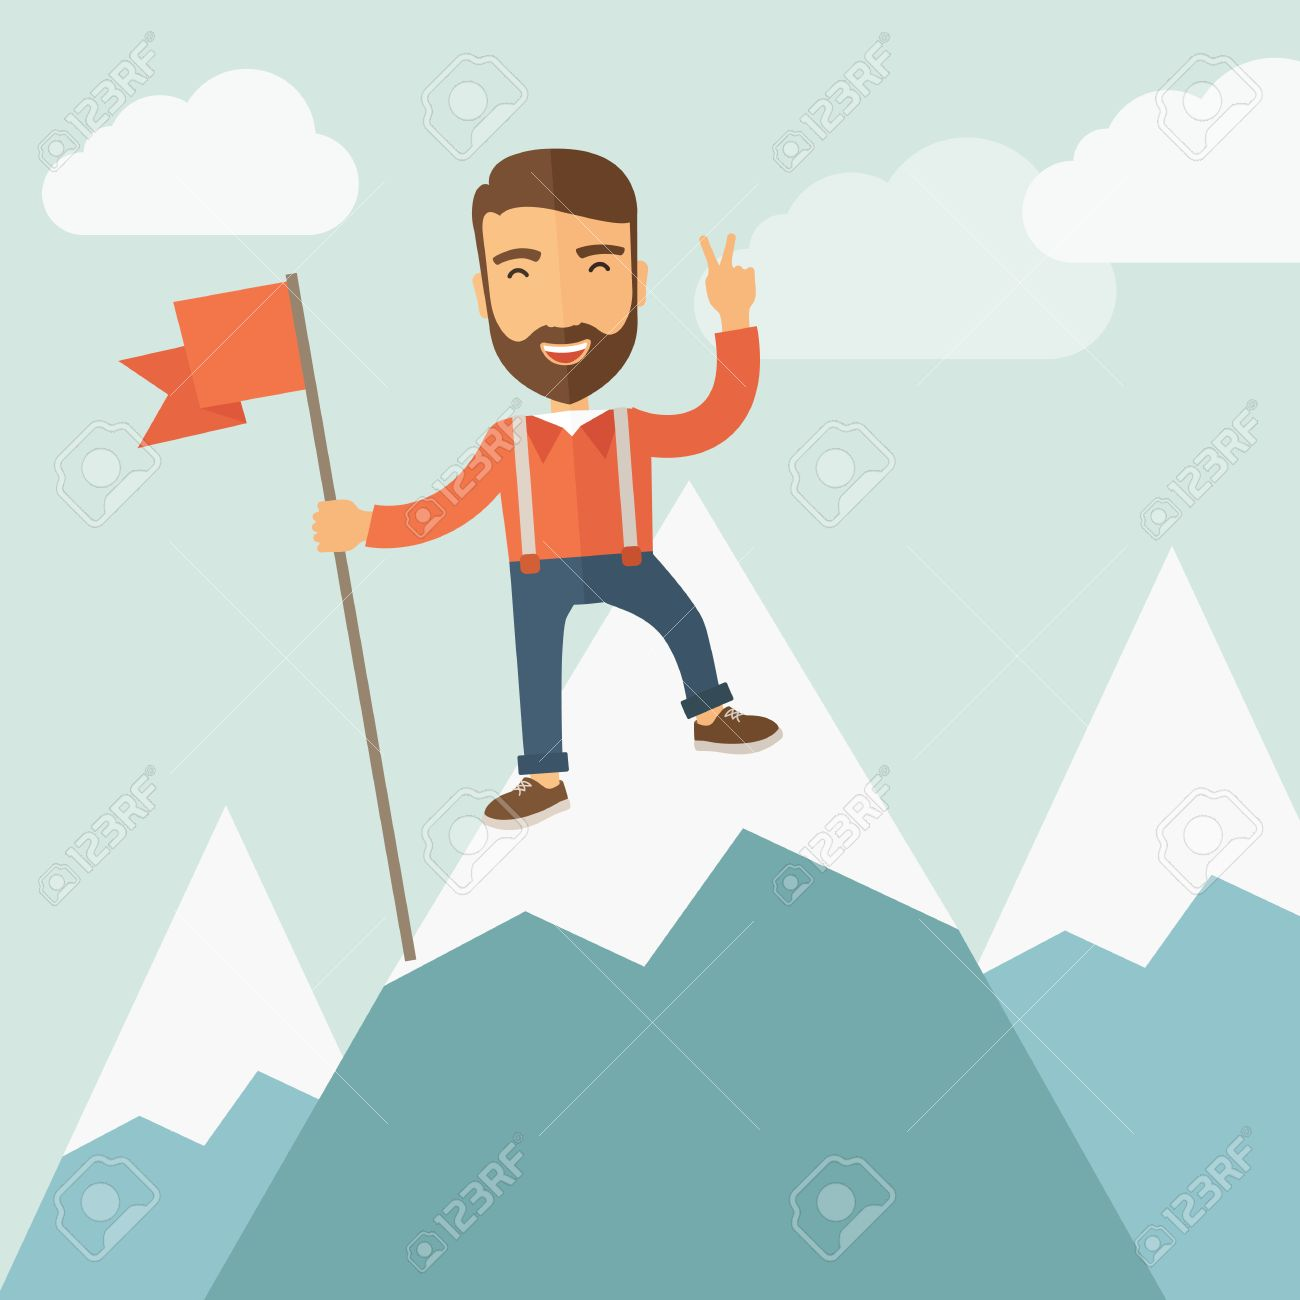 Mountain clipart happy #9